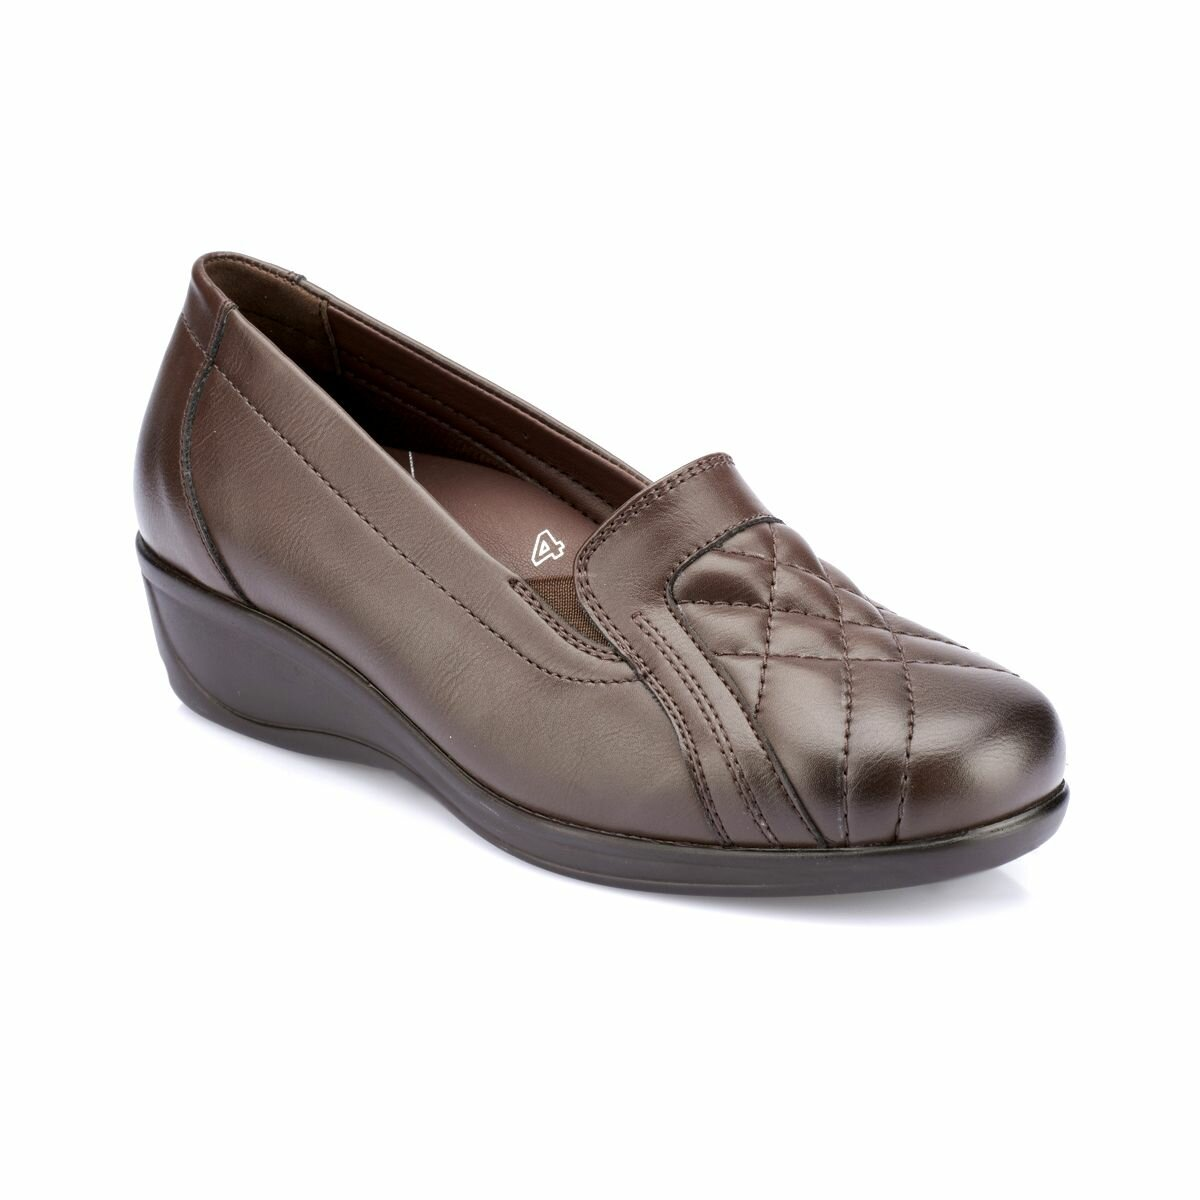 FLO 82.100178.Z Brown Women 'S Shoes Polaris 5 Point